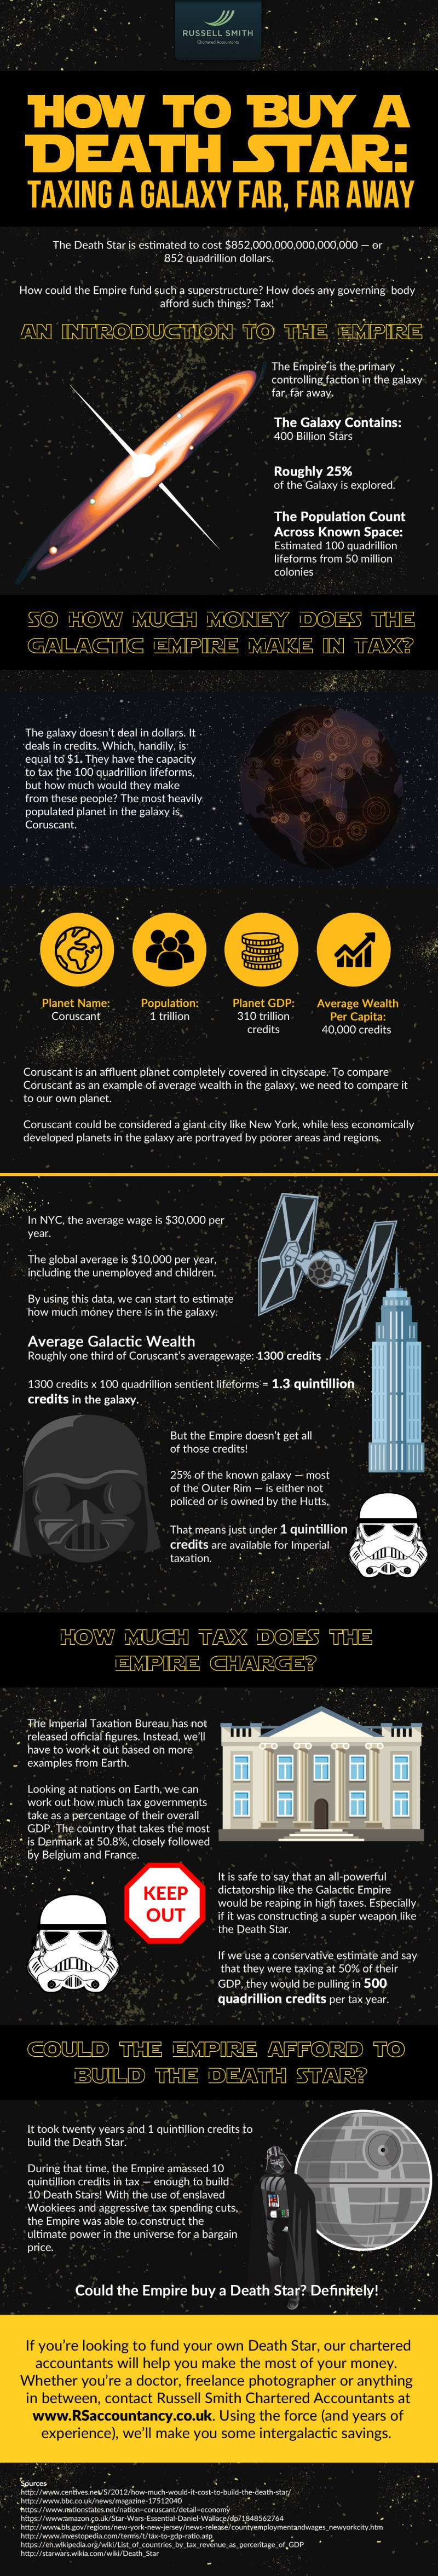 An infographic on buying a Death Star from a Chartered Accountant's point of view